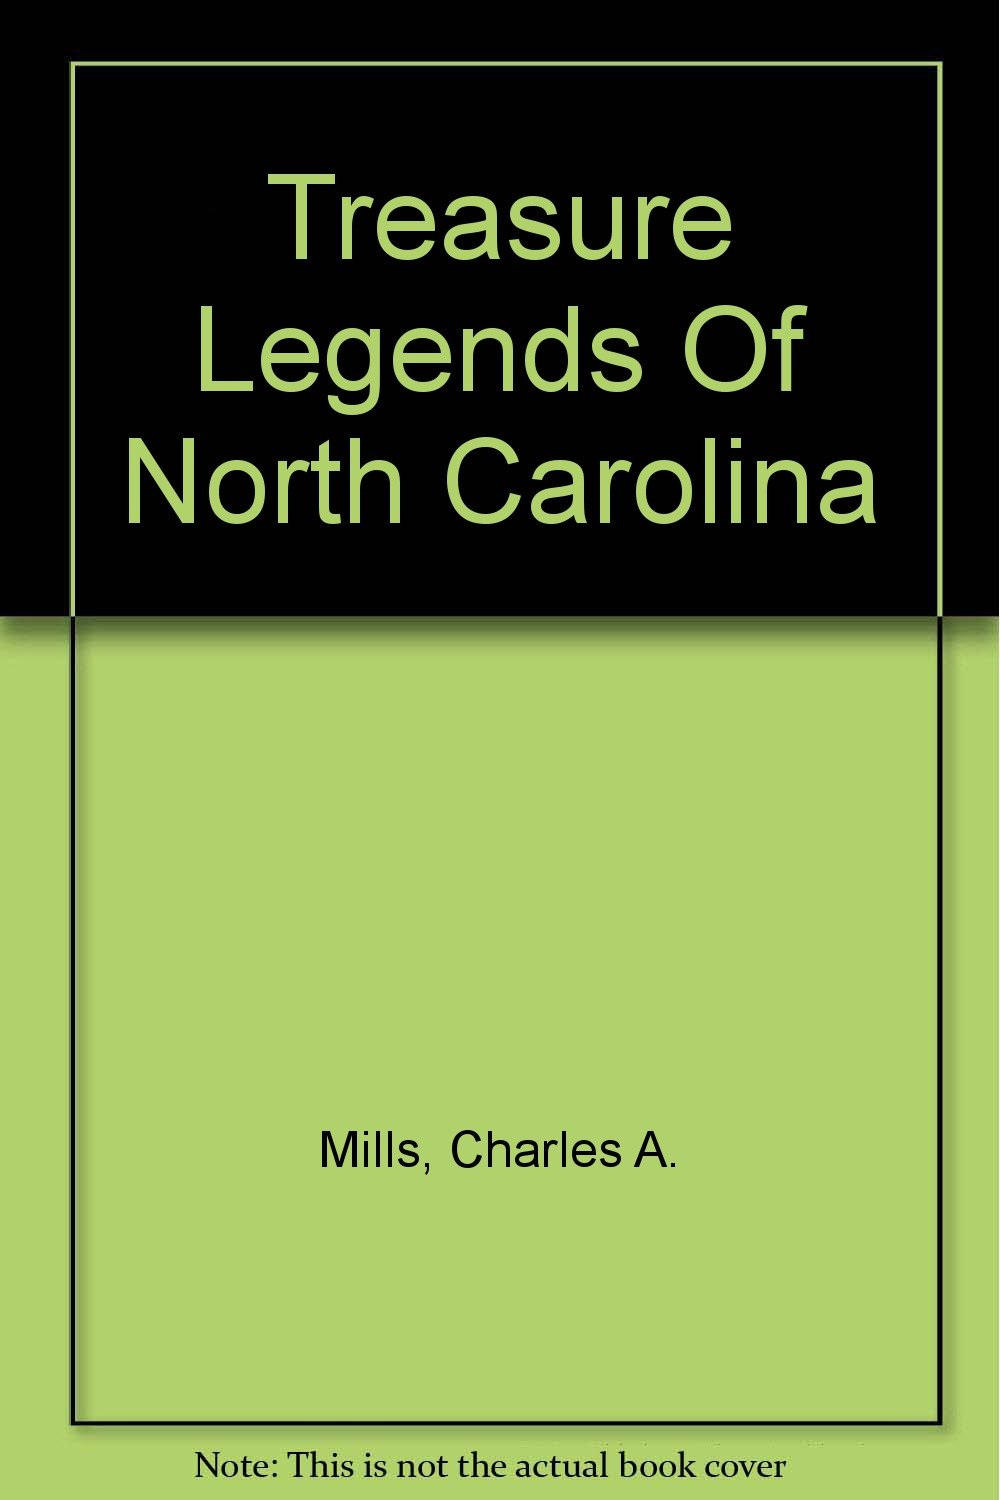 Treasure Legends of North Carolina